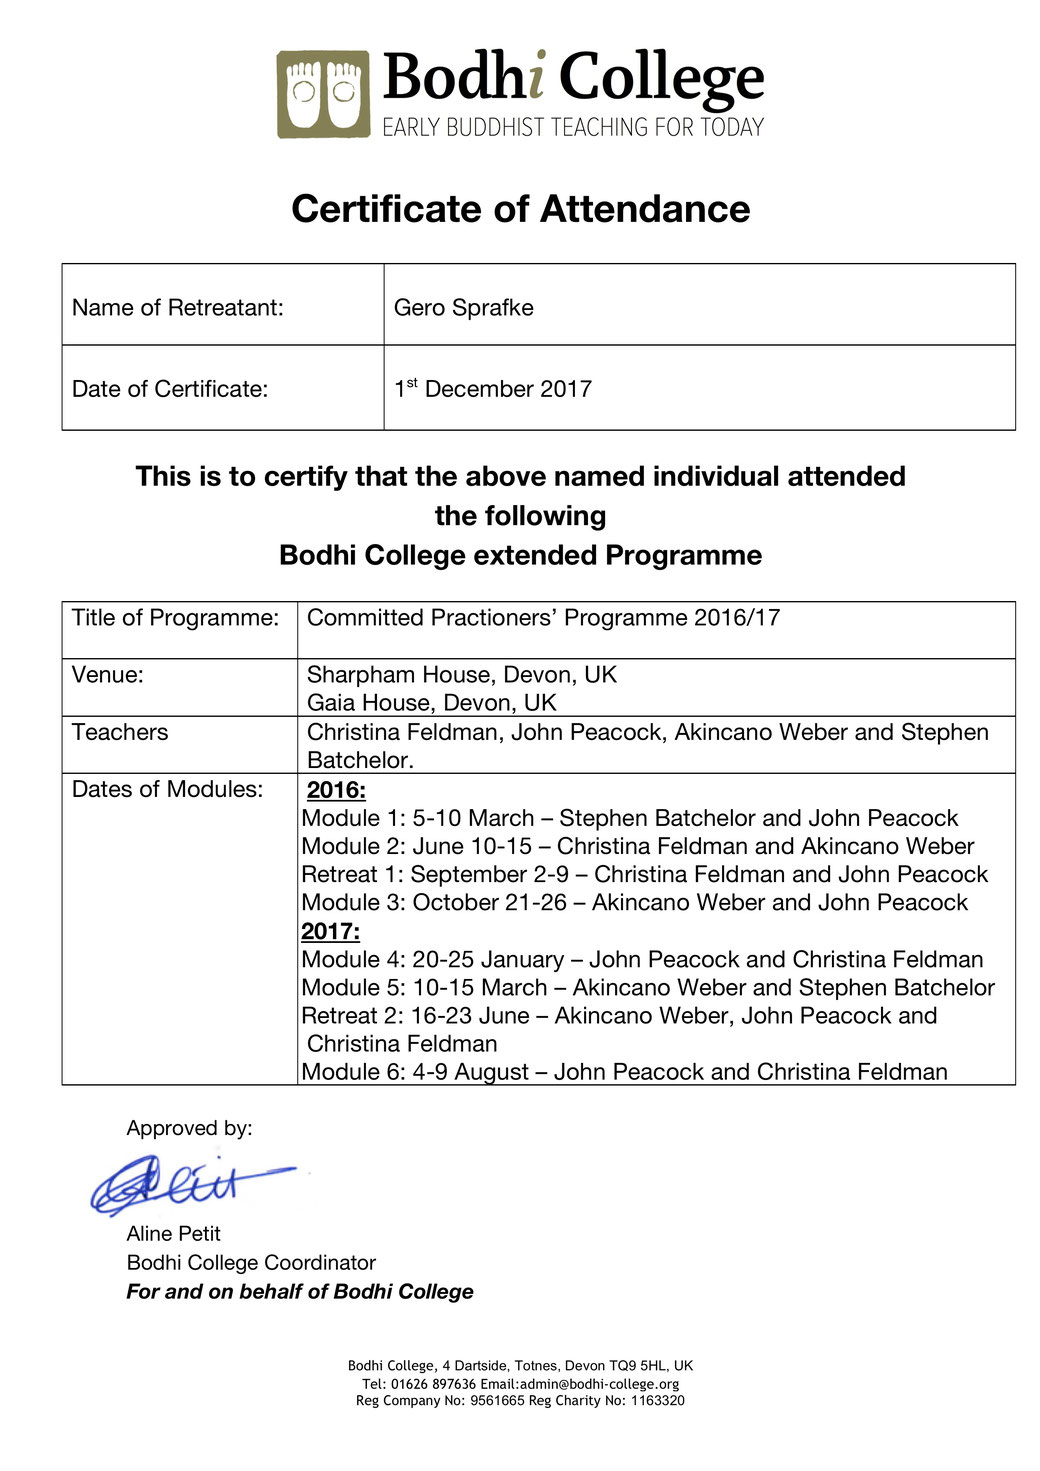 Bodhi College | Committed Practitioners´ Programme - Certificate of Attendance